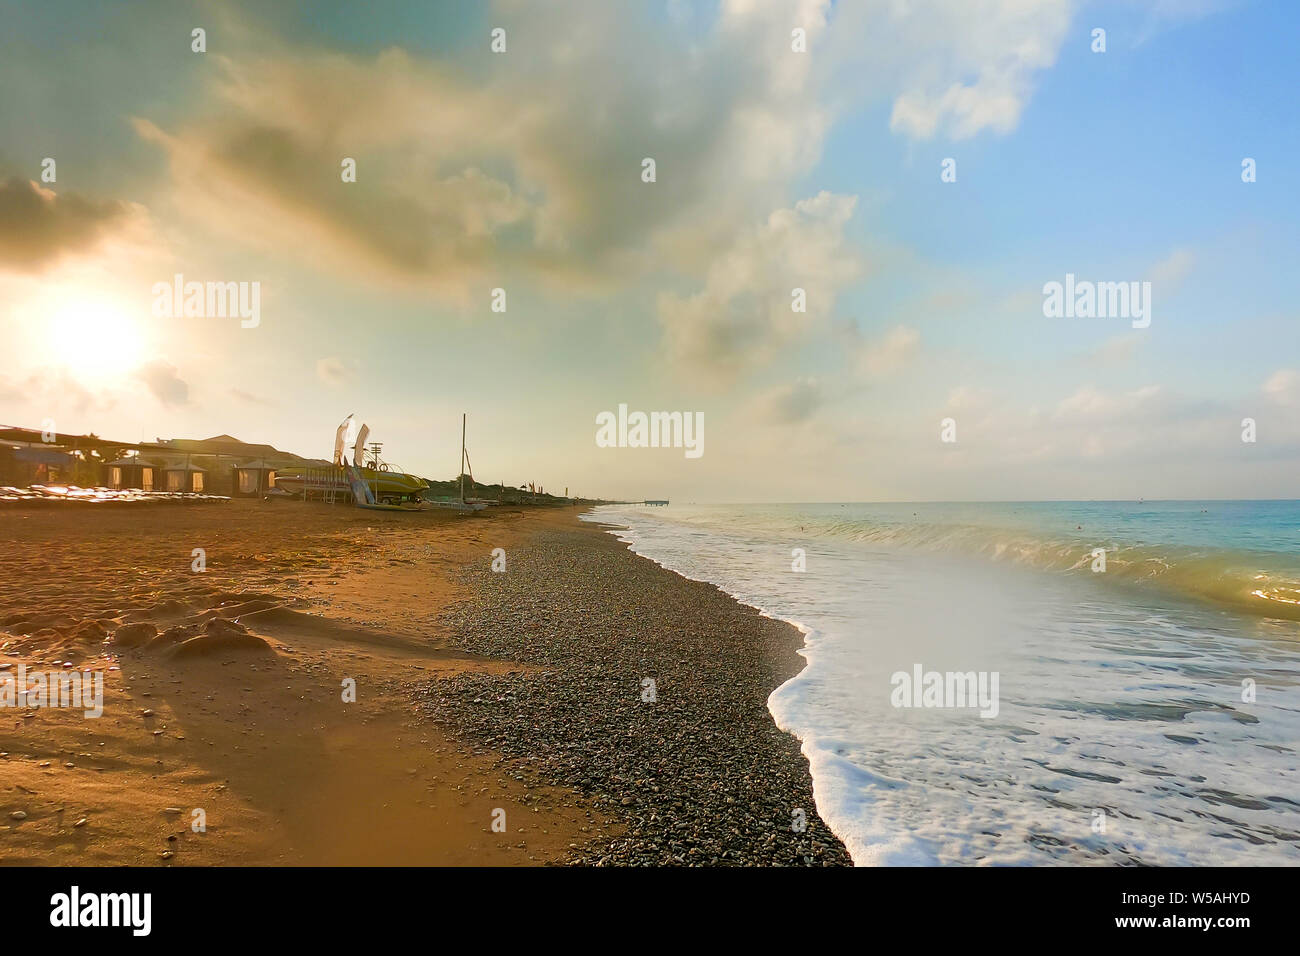 The storm is coming to the sea coast, bright colors of the sky and sea water. Stock Photo